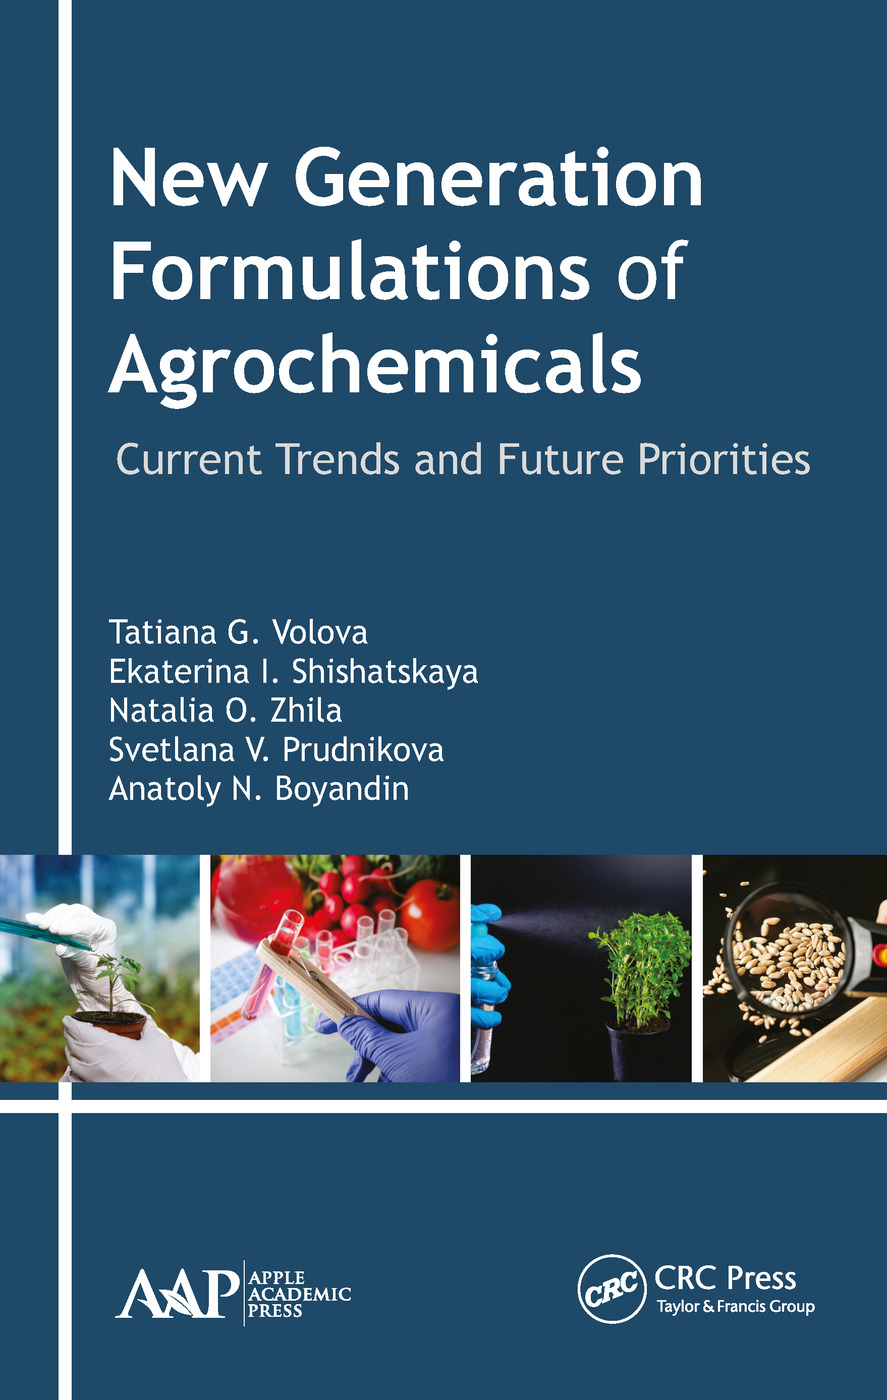 New Generation Formulations of Agrochemicals